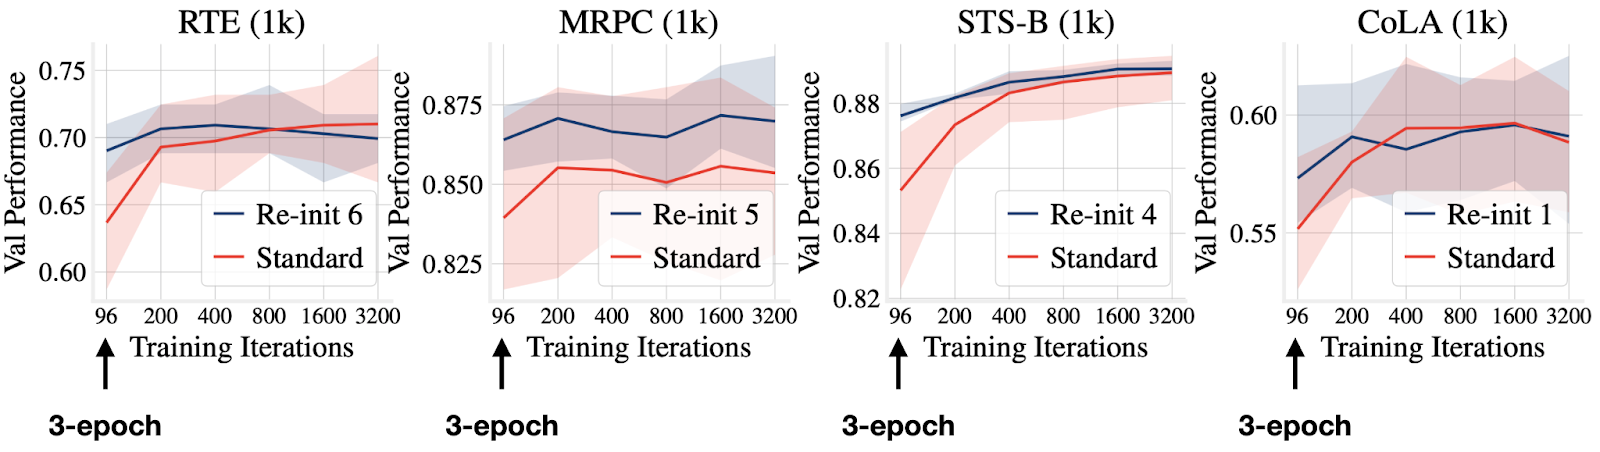 ASAPP - We also studied the conventional 3-epoch fine-tuning setup of BERT. Through extensive experiments on various datasets, we observe that the widely adopted 3-epoch setup is insufficient for few-sample datasets. Even with few training examples, the model still requires hundreds of updates to converge